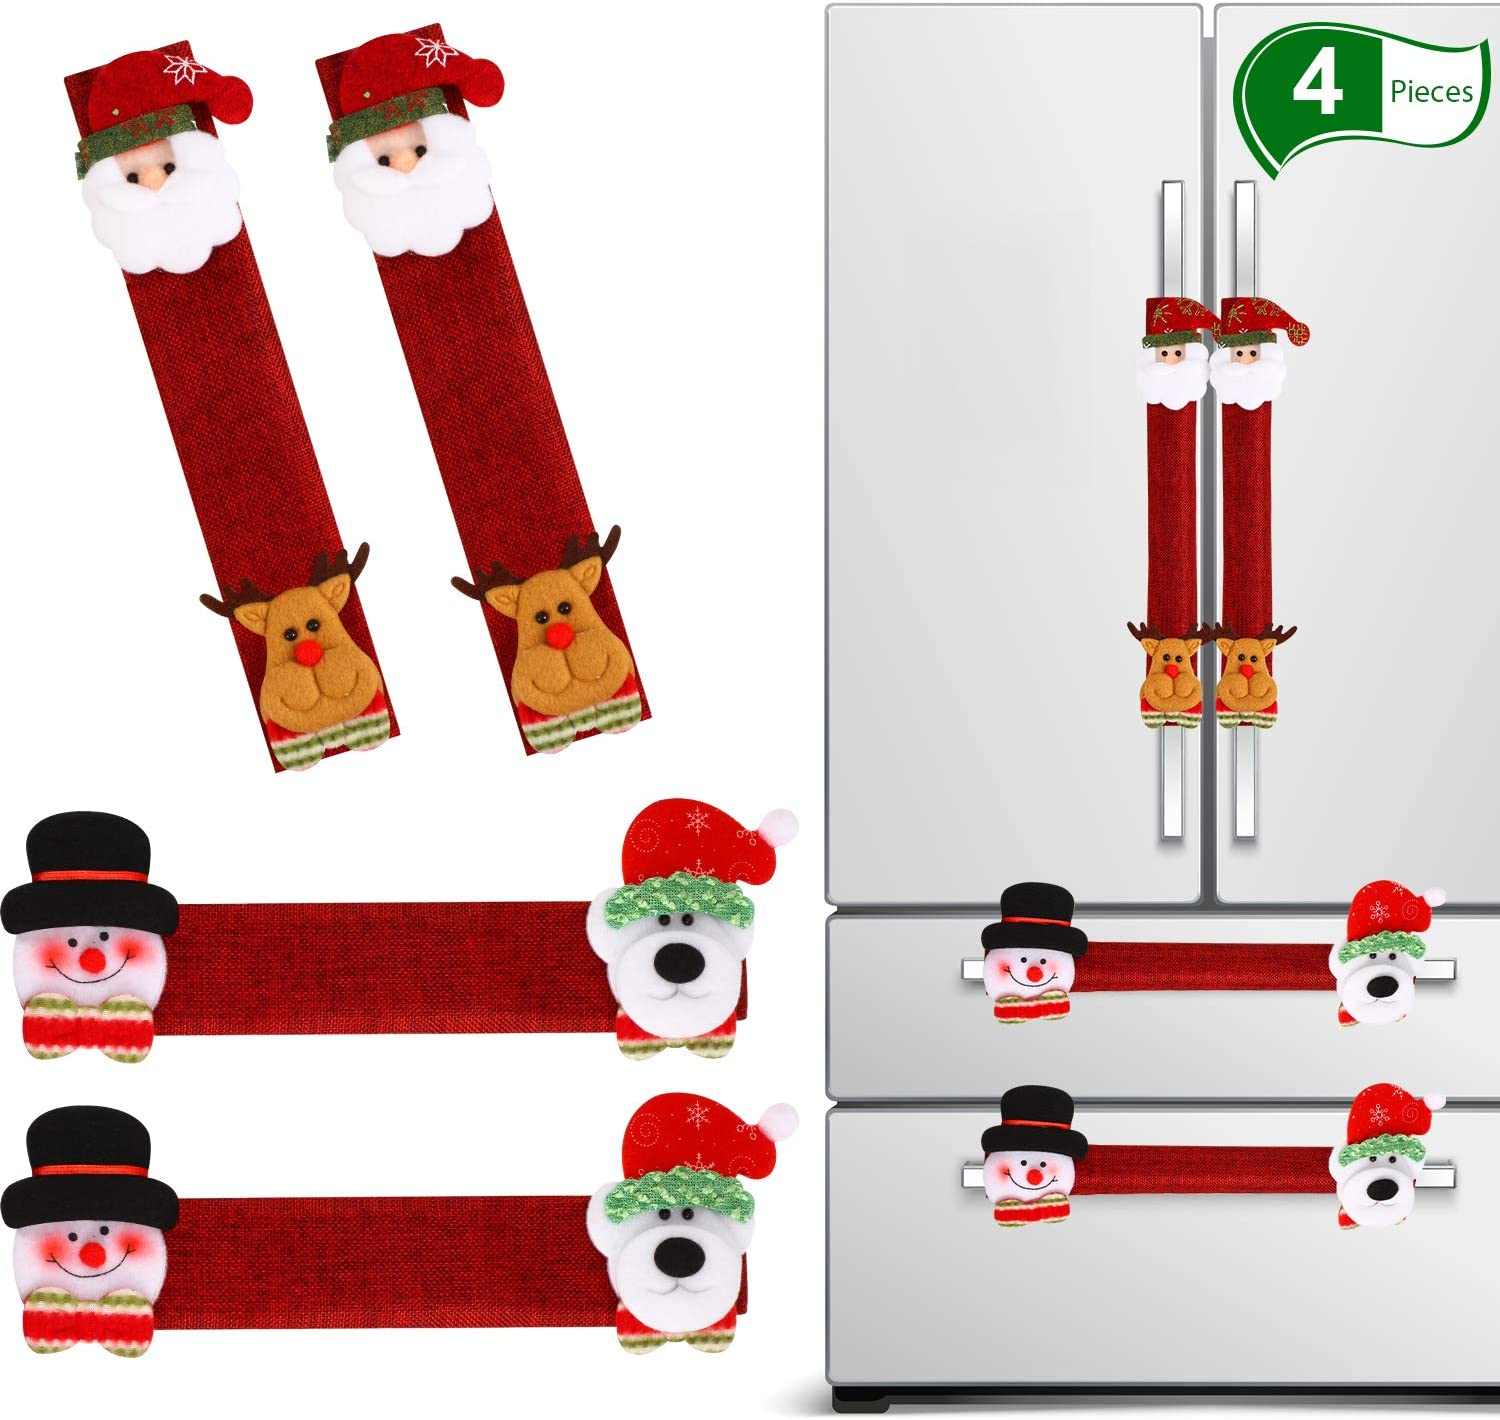 4 Pieces Christmas Refrigerator Door Handle Cover, Snowman Kitchen Appliance Microwave Oven Dishwasher Handle Cover for Christmas Decorations (Dark Red Christmas)